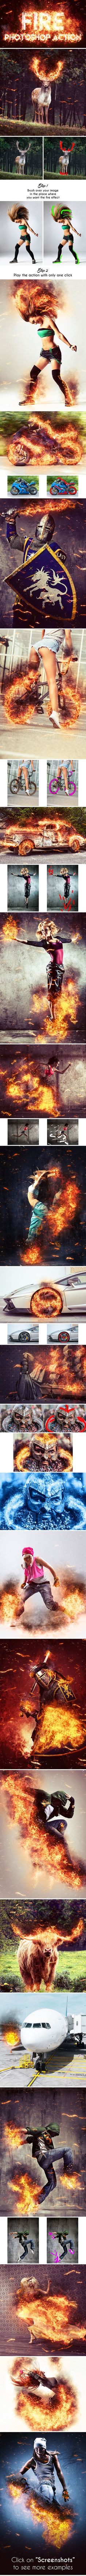 Fire Photoshop Action  #light #burn • Download ➝ https://graphicriver.net/item/fire-photoshop-action/16212593?ref=pxcr #AdobePhotoshopTutorial